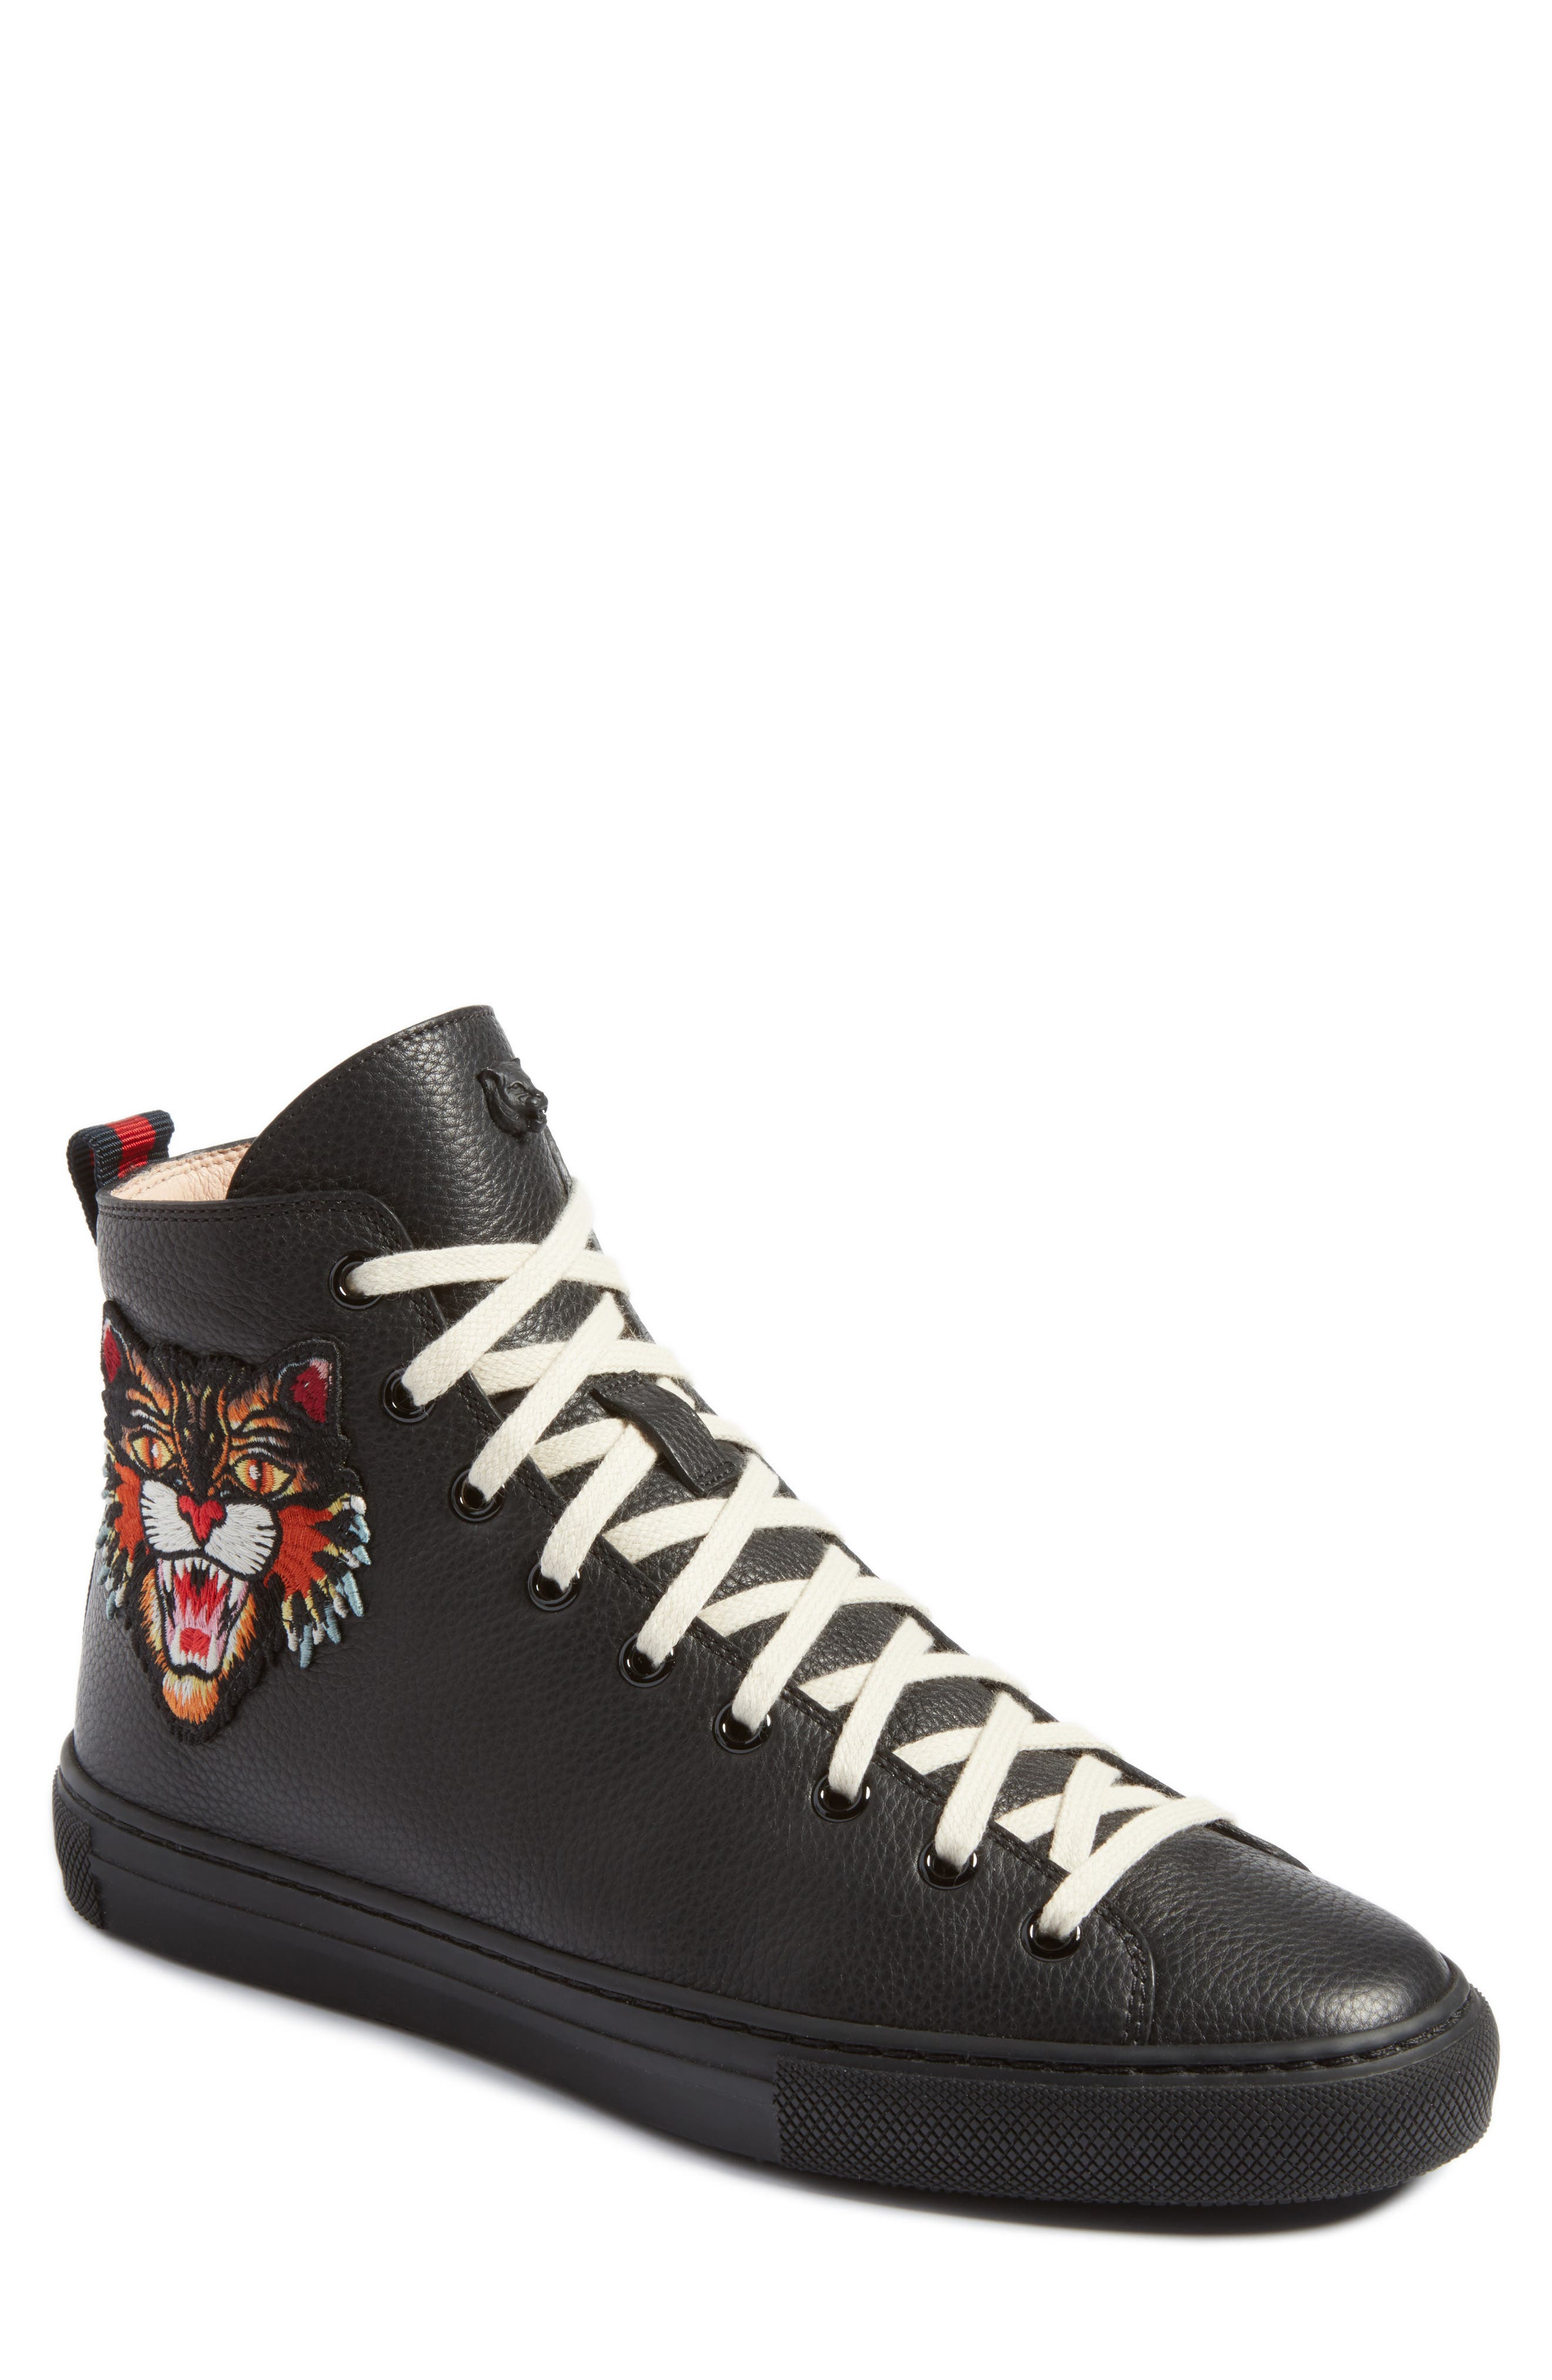 Main Image - Gucci Major High Top Sneaker (Men)